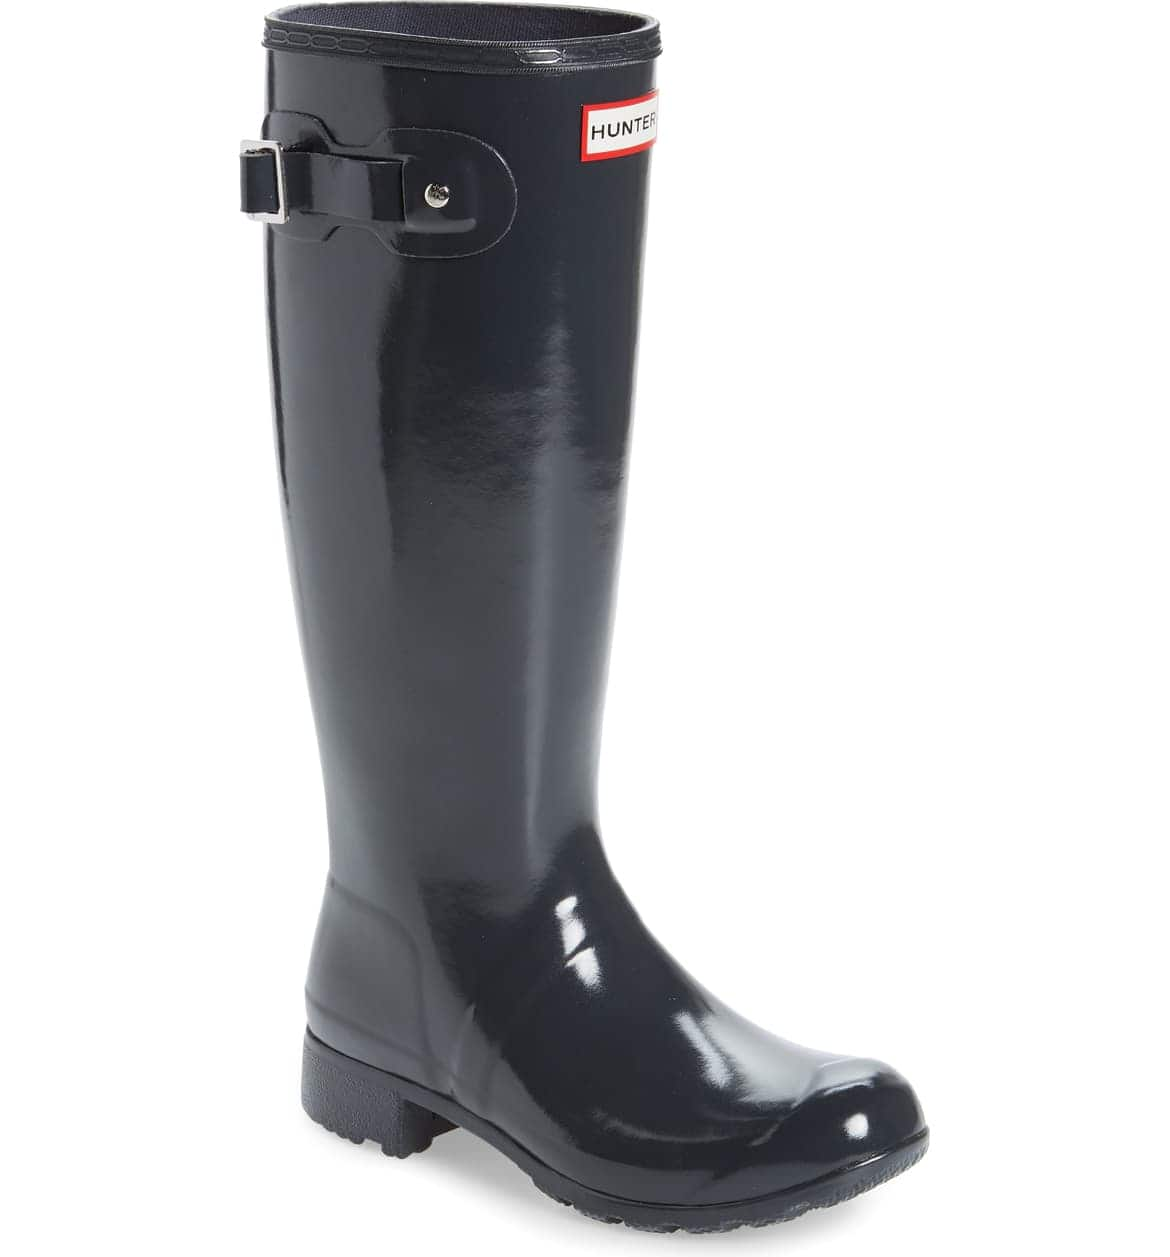 Hunter Boots various styles at Nordstrom free ship $59.98